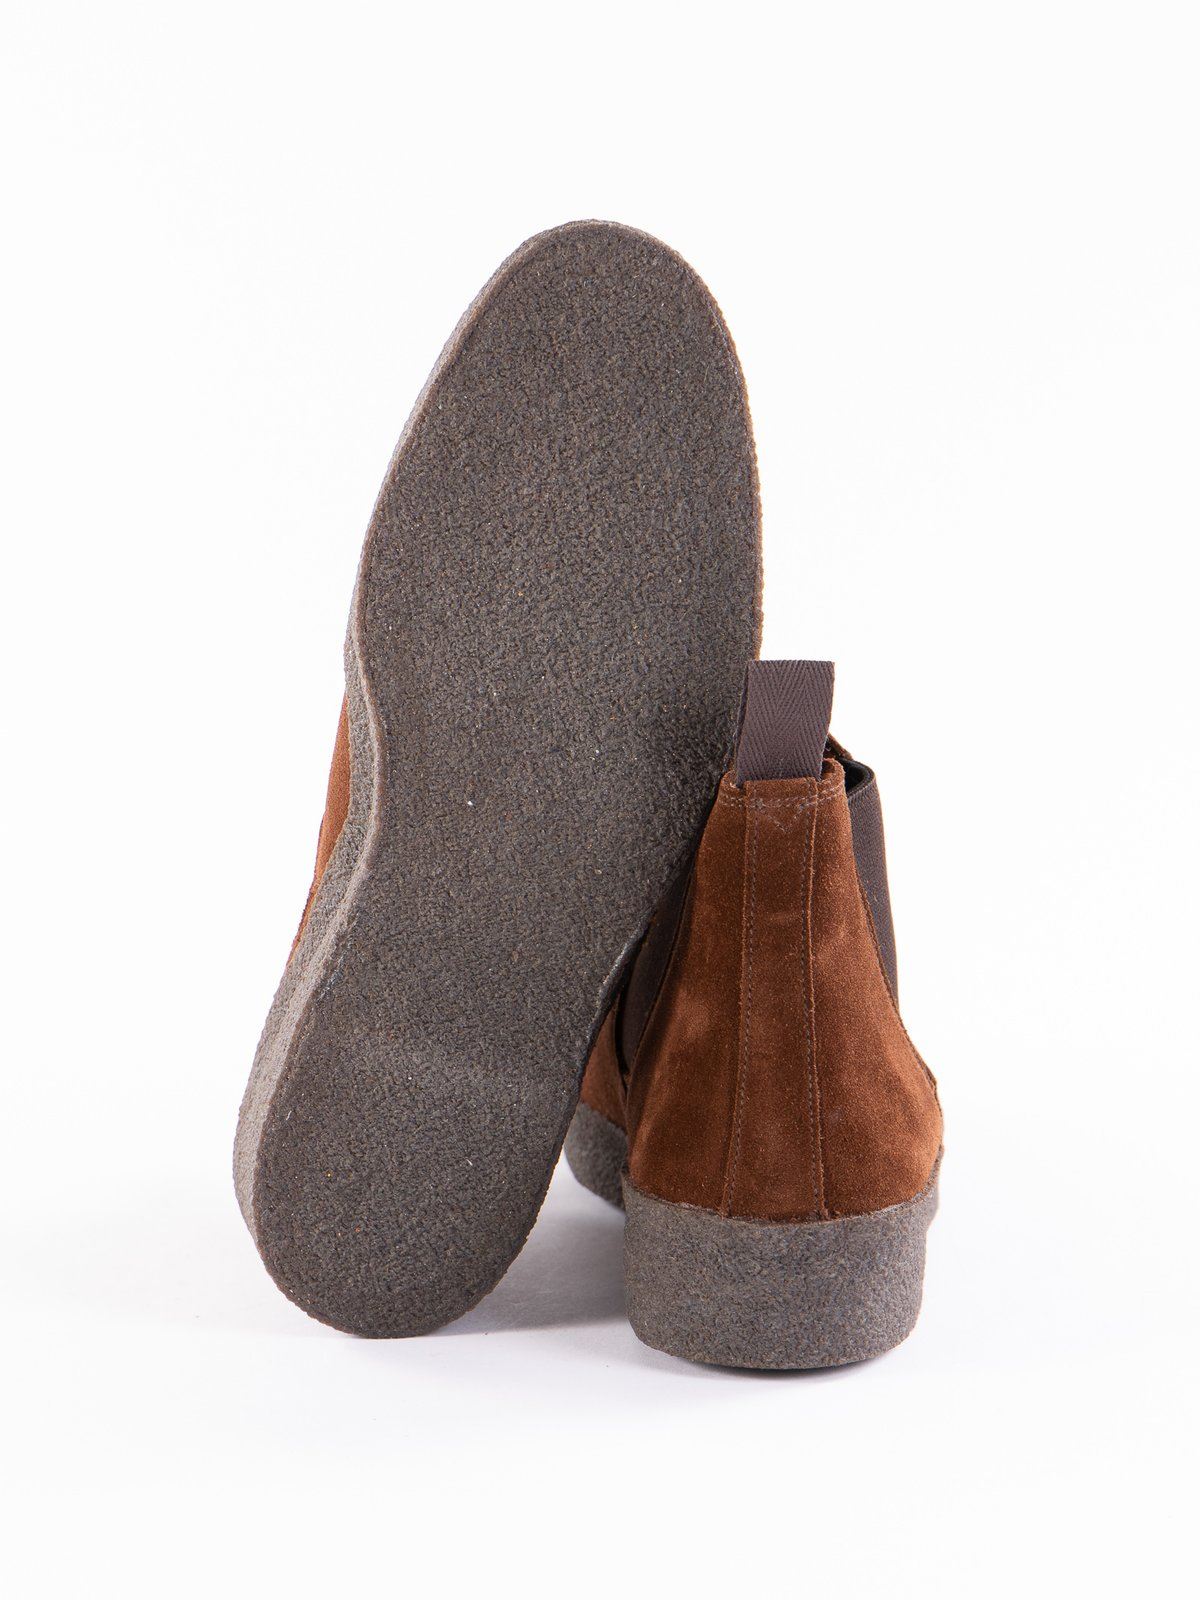 Polo Snuff Suede Chelsea Boot - Image 5